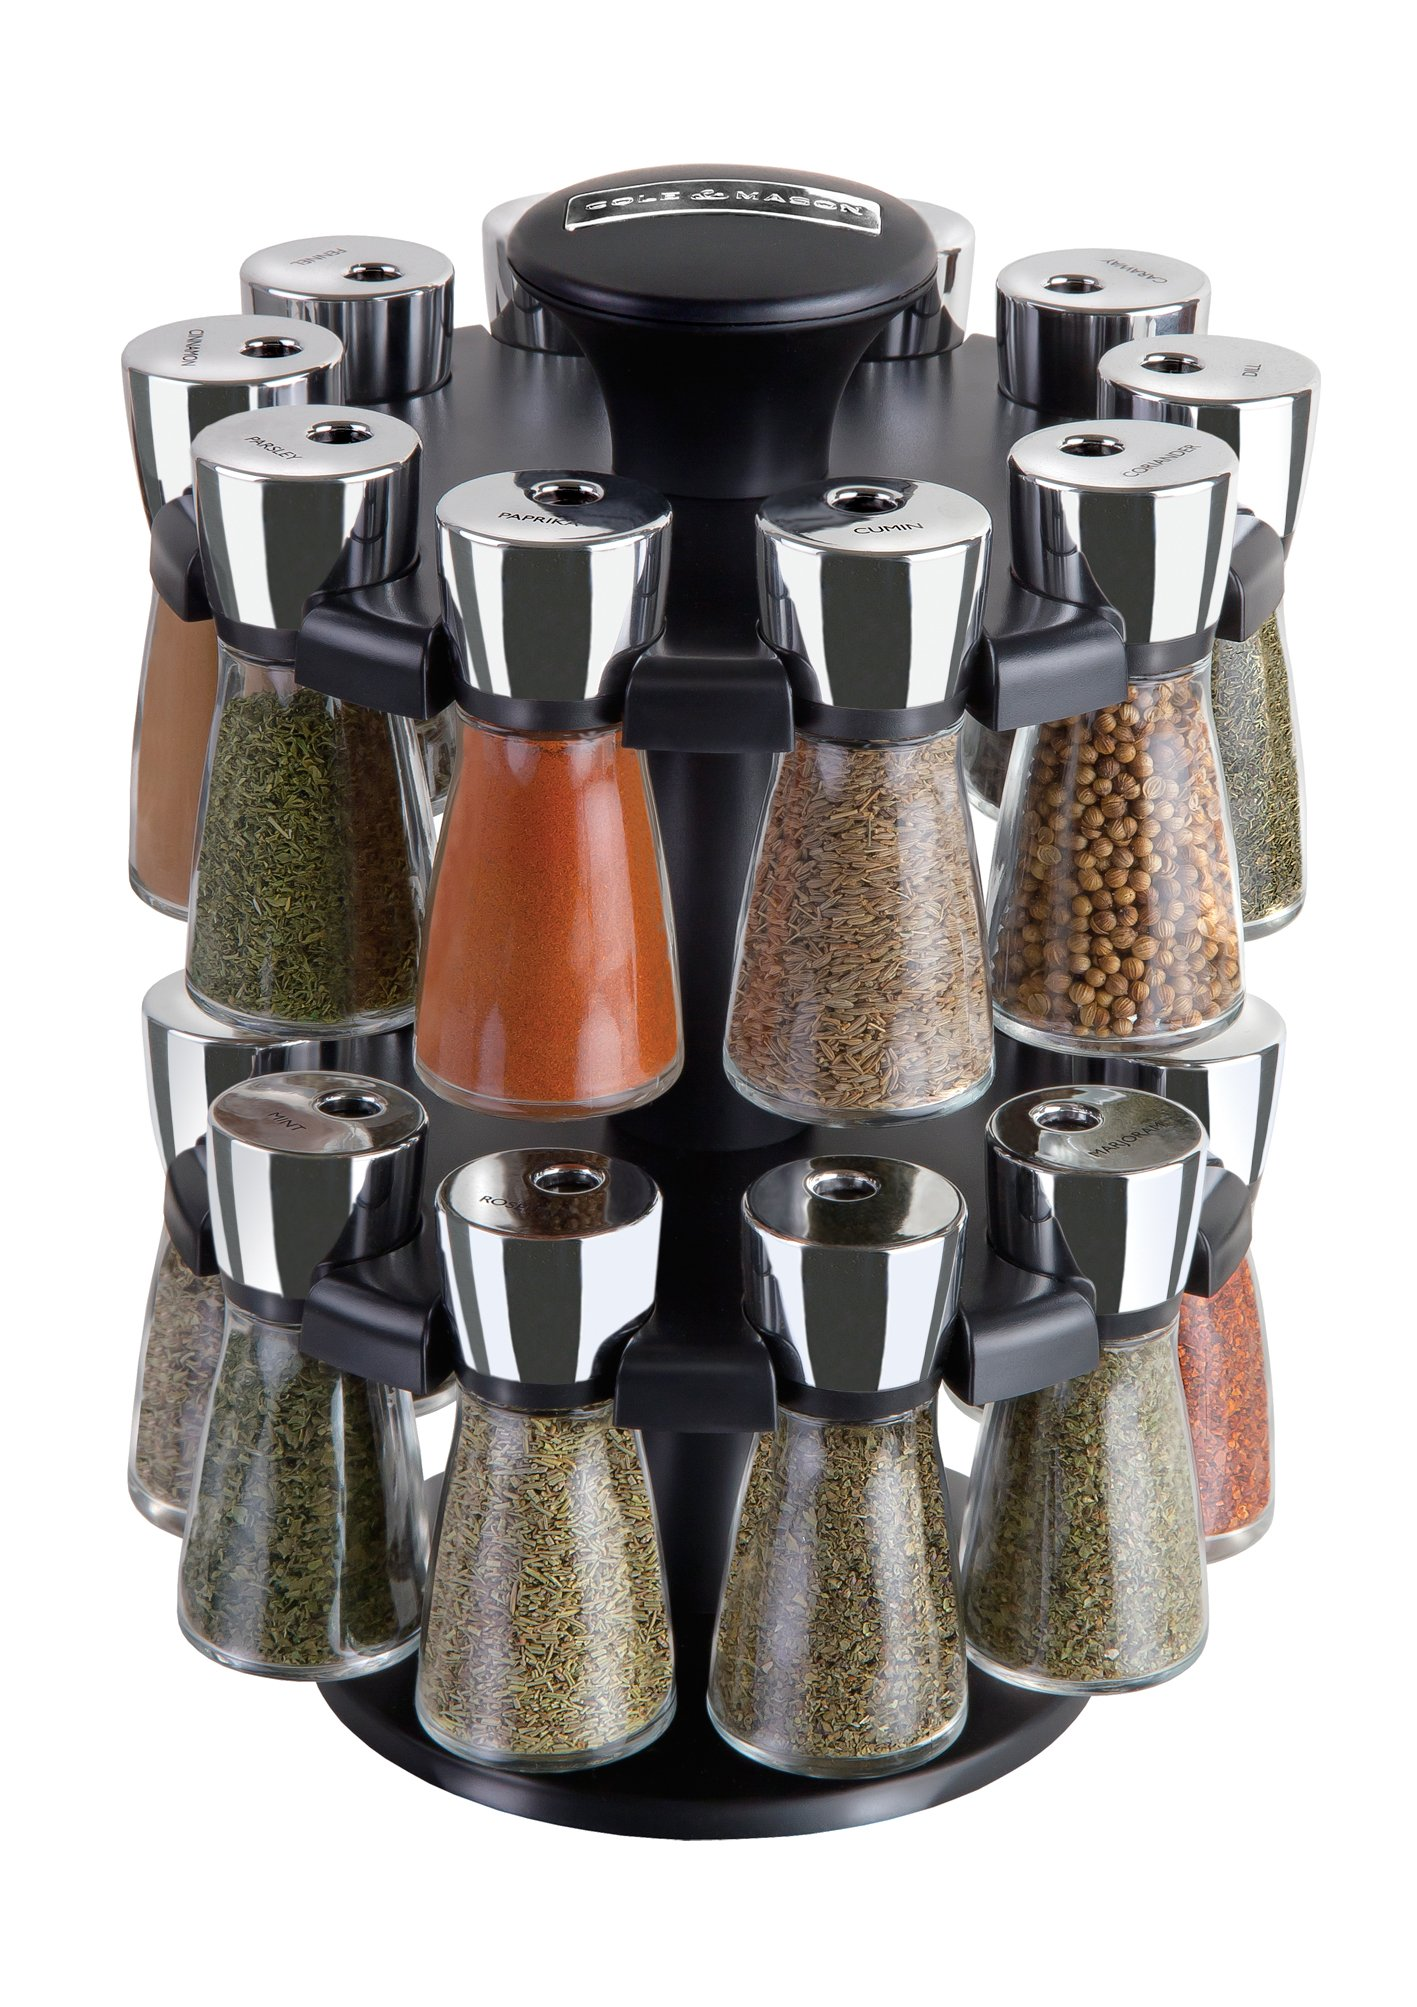 Cole & Mason Herb and Spice Rack with Spices